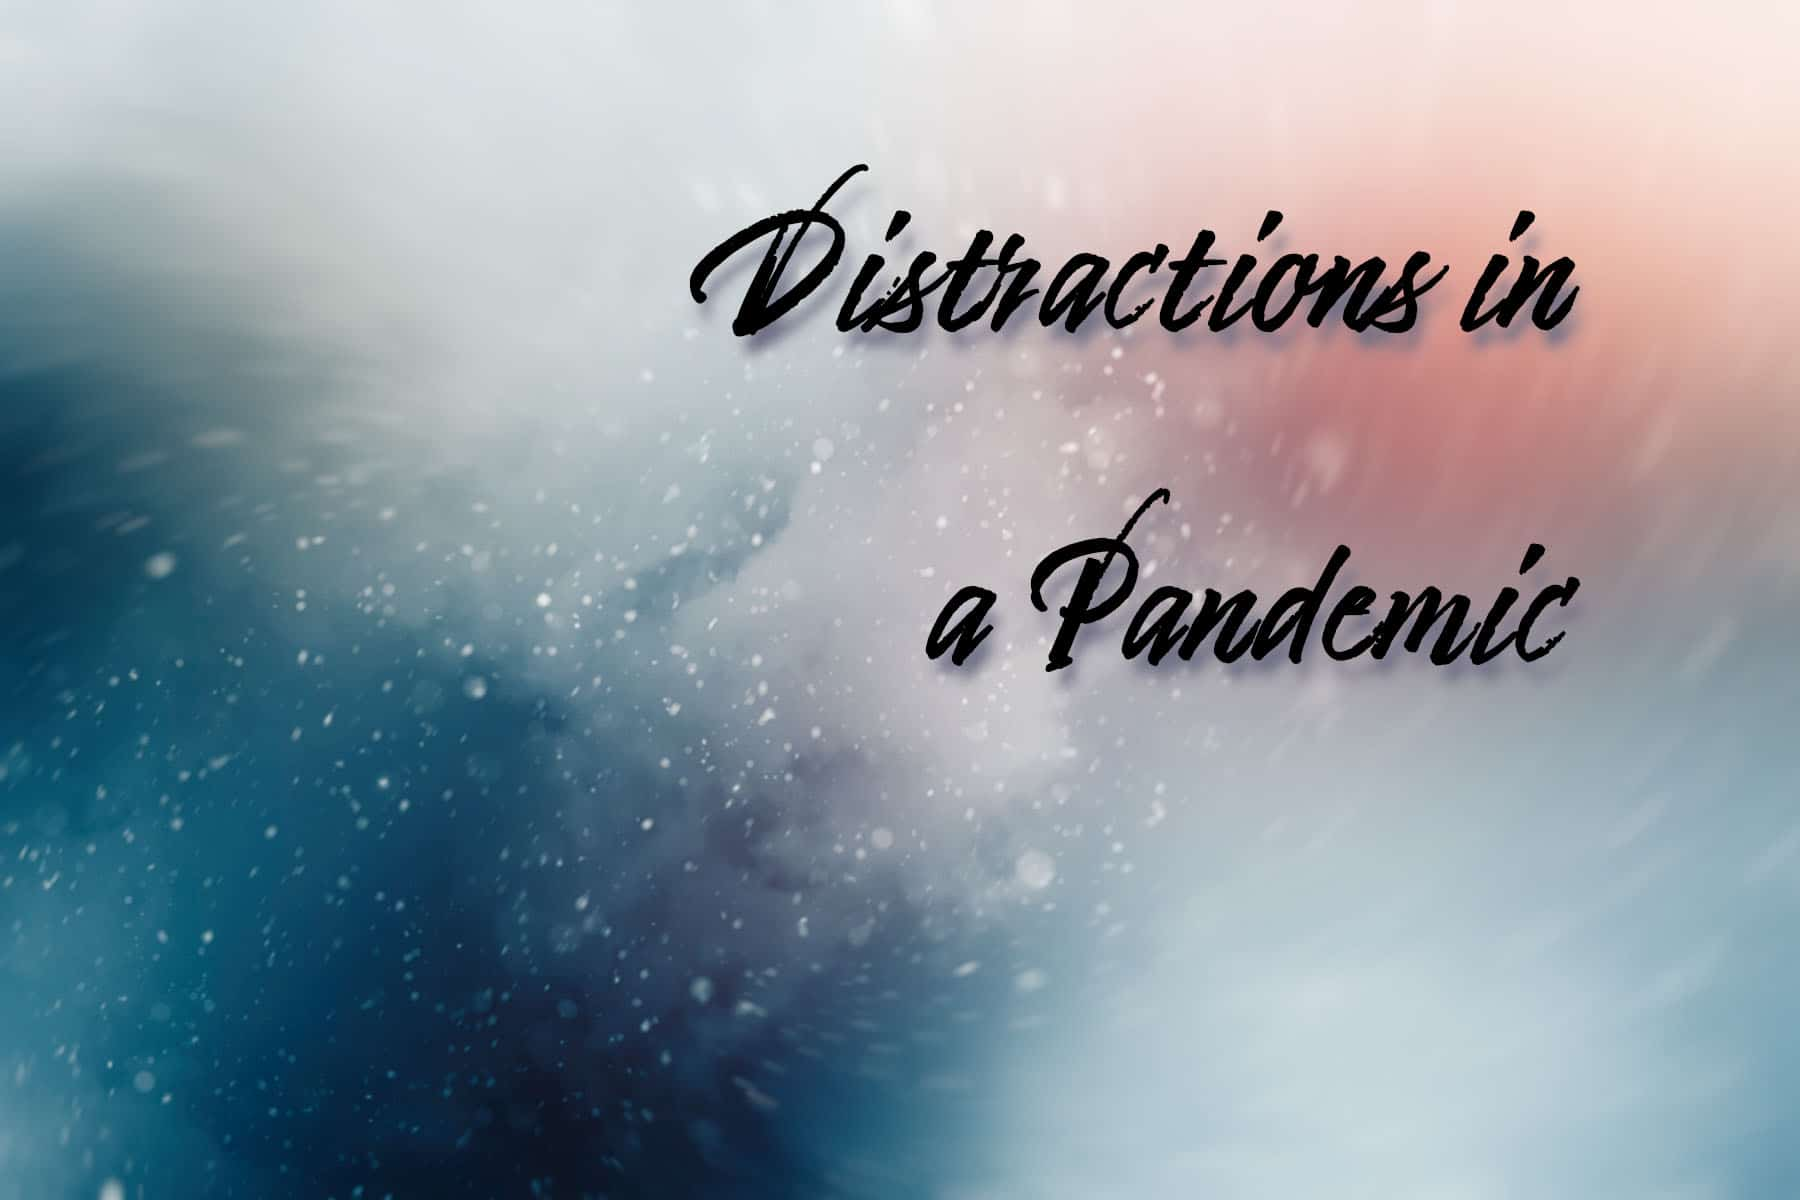 Distractions in  a Pandemic